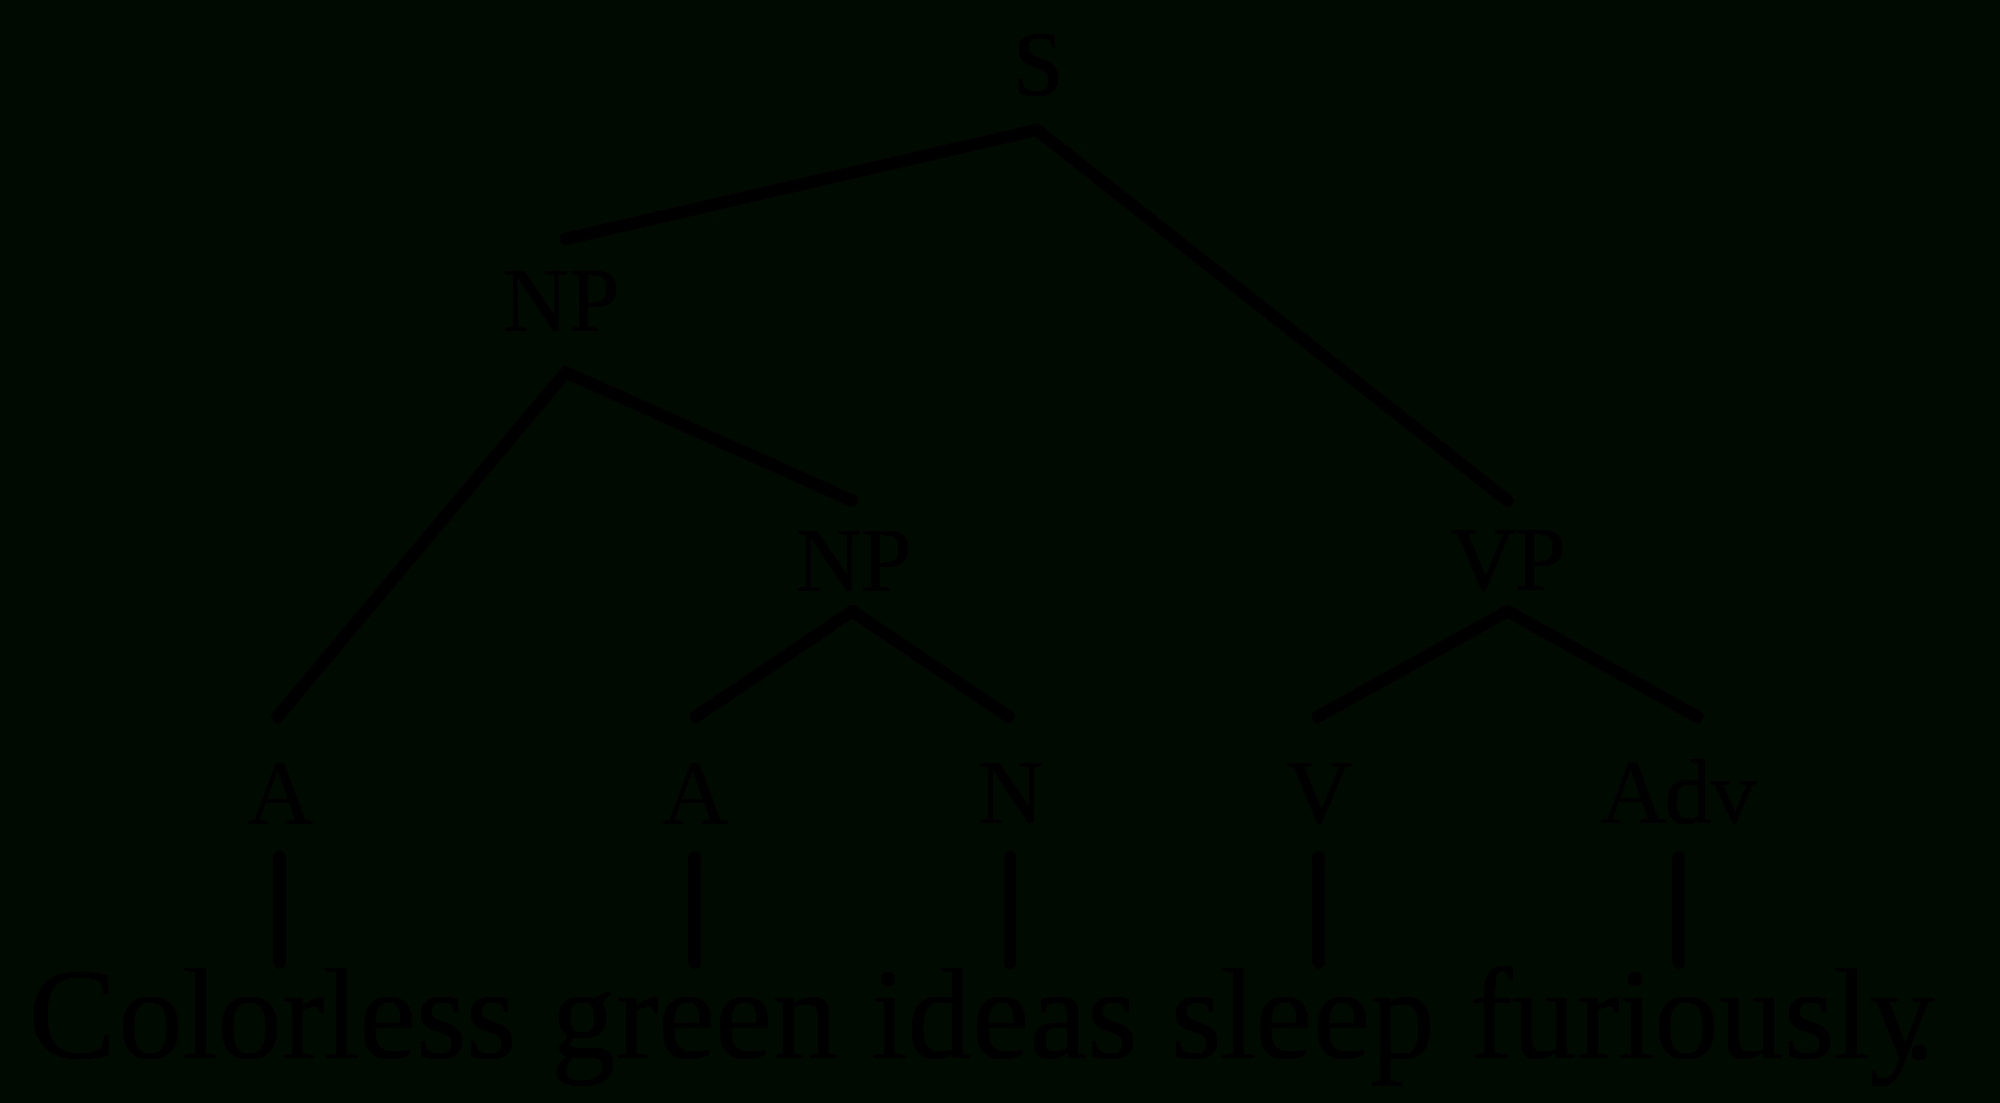 10 Gorgeous Colorless Green Ideas Sleep Furiously filecgisf tgg svg wikimedia commons 2021